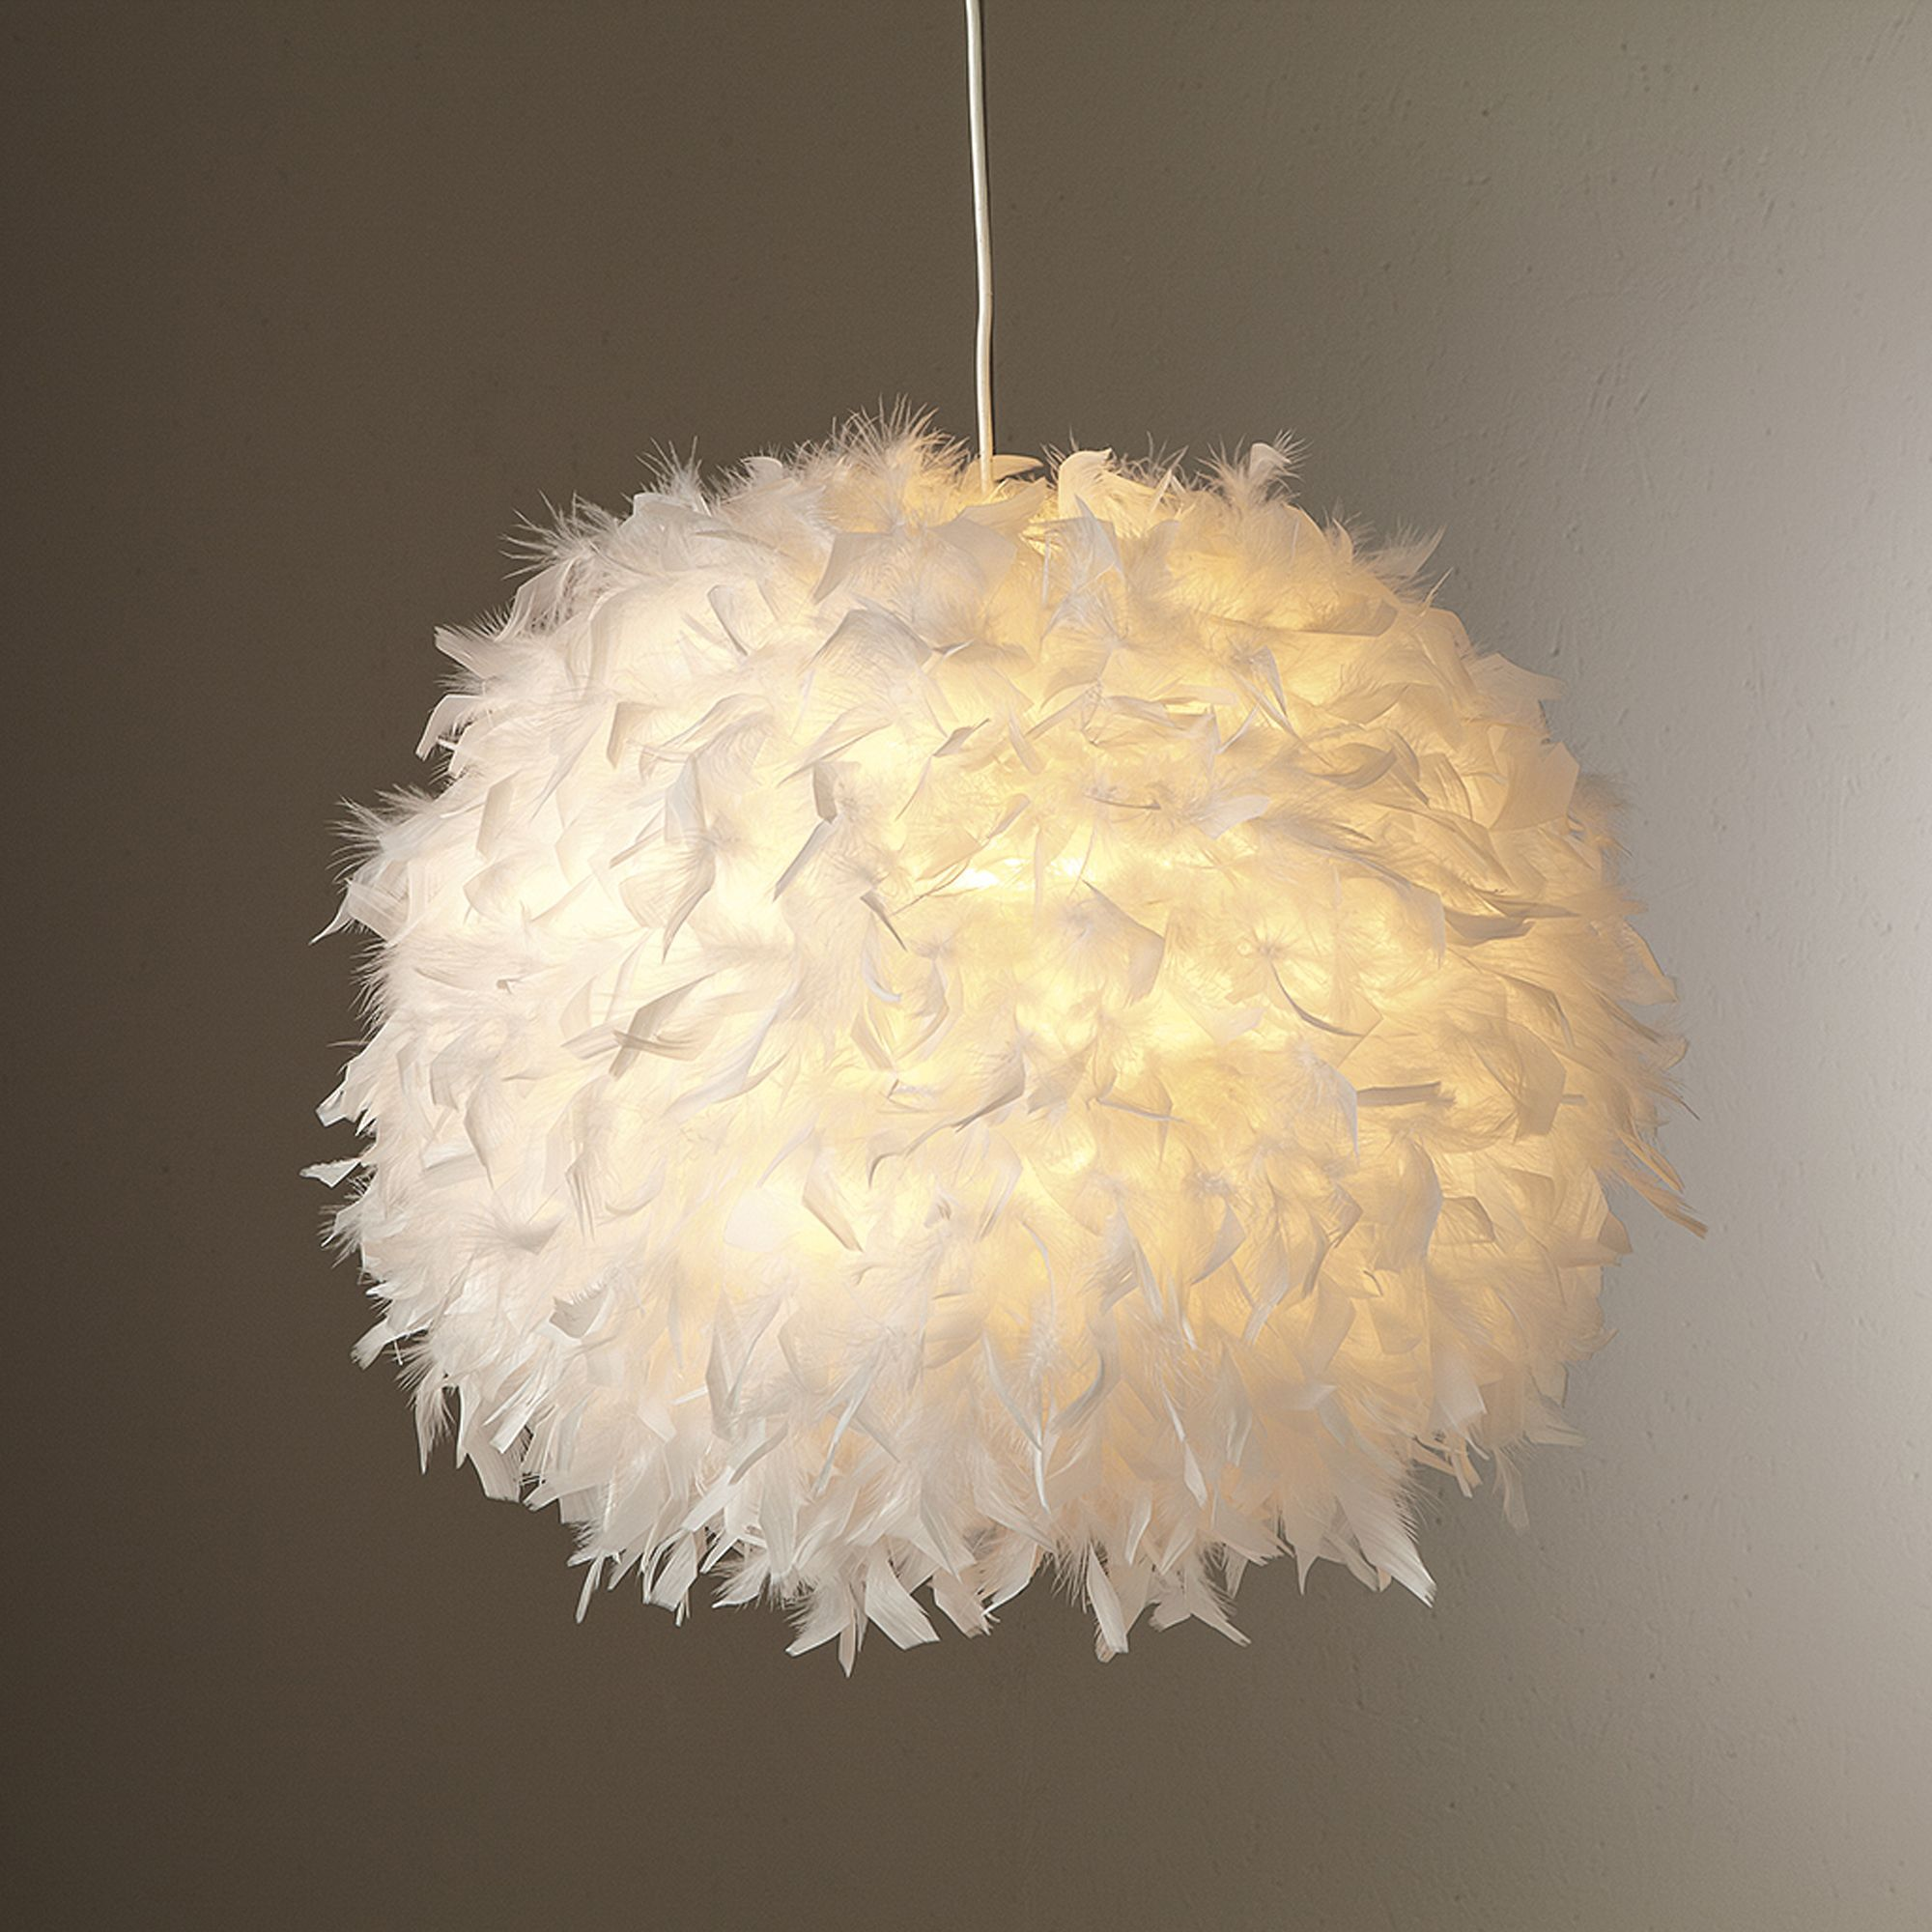 Suspension boule en plumes non lectrifi blanc kokot for Suspension boule